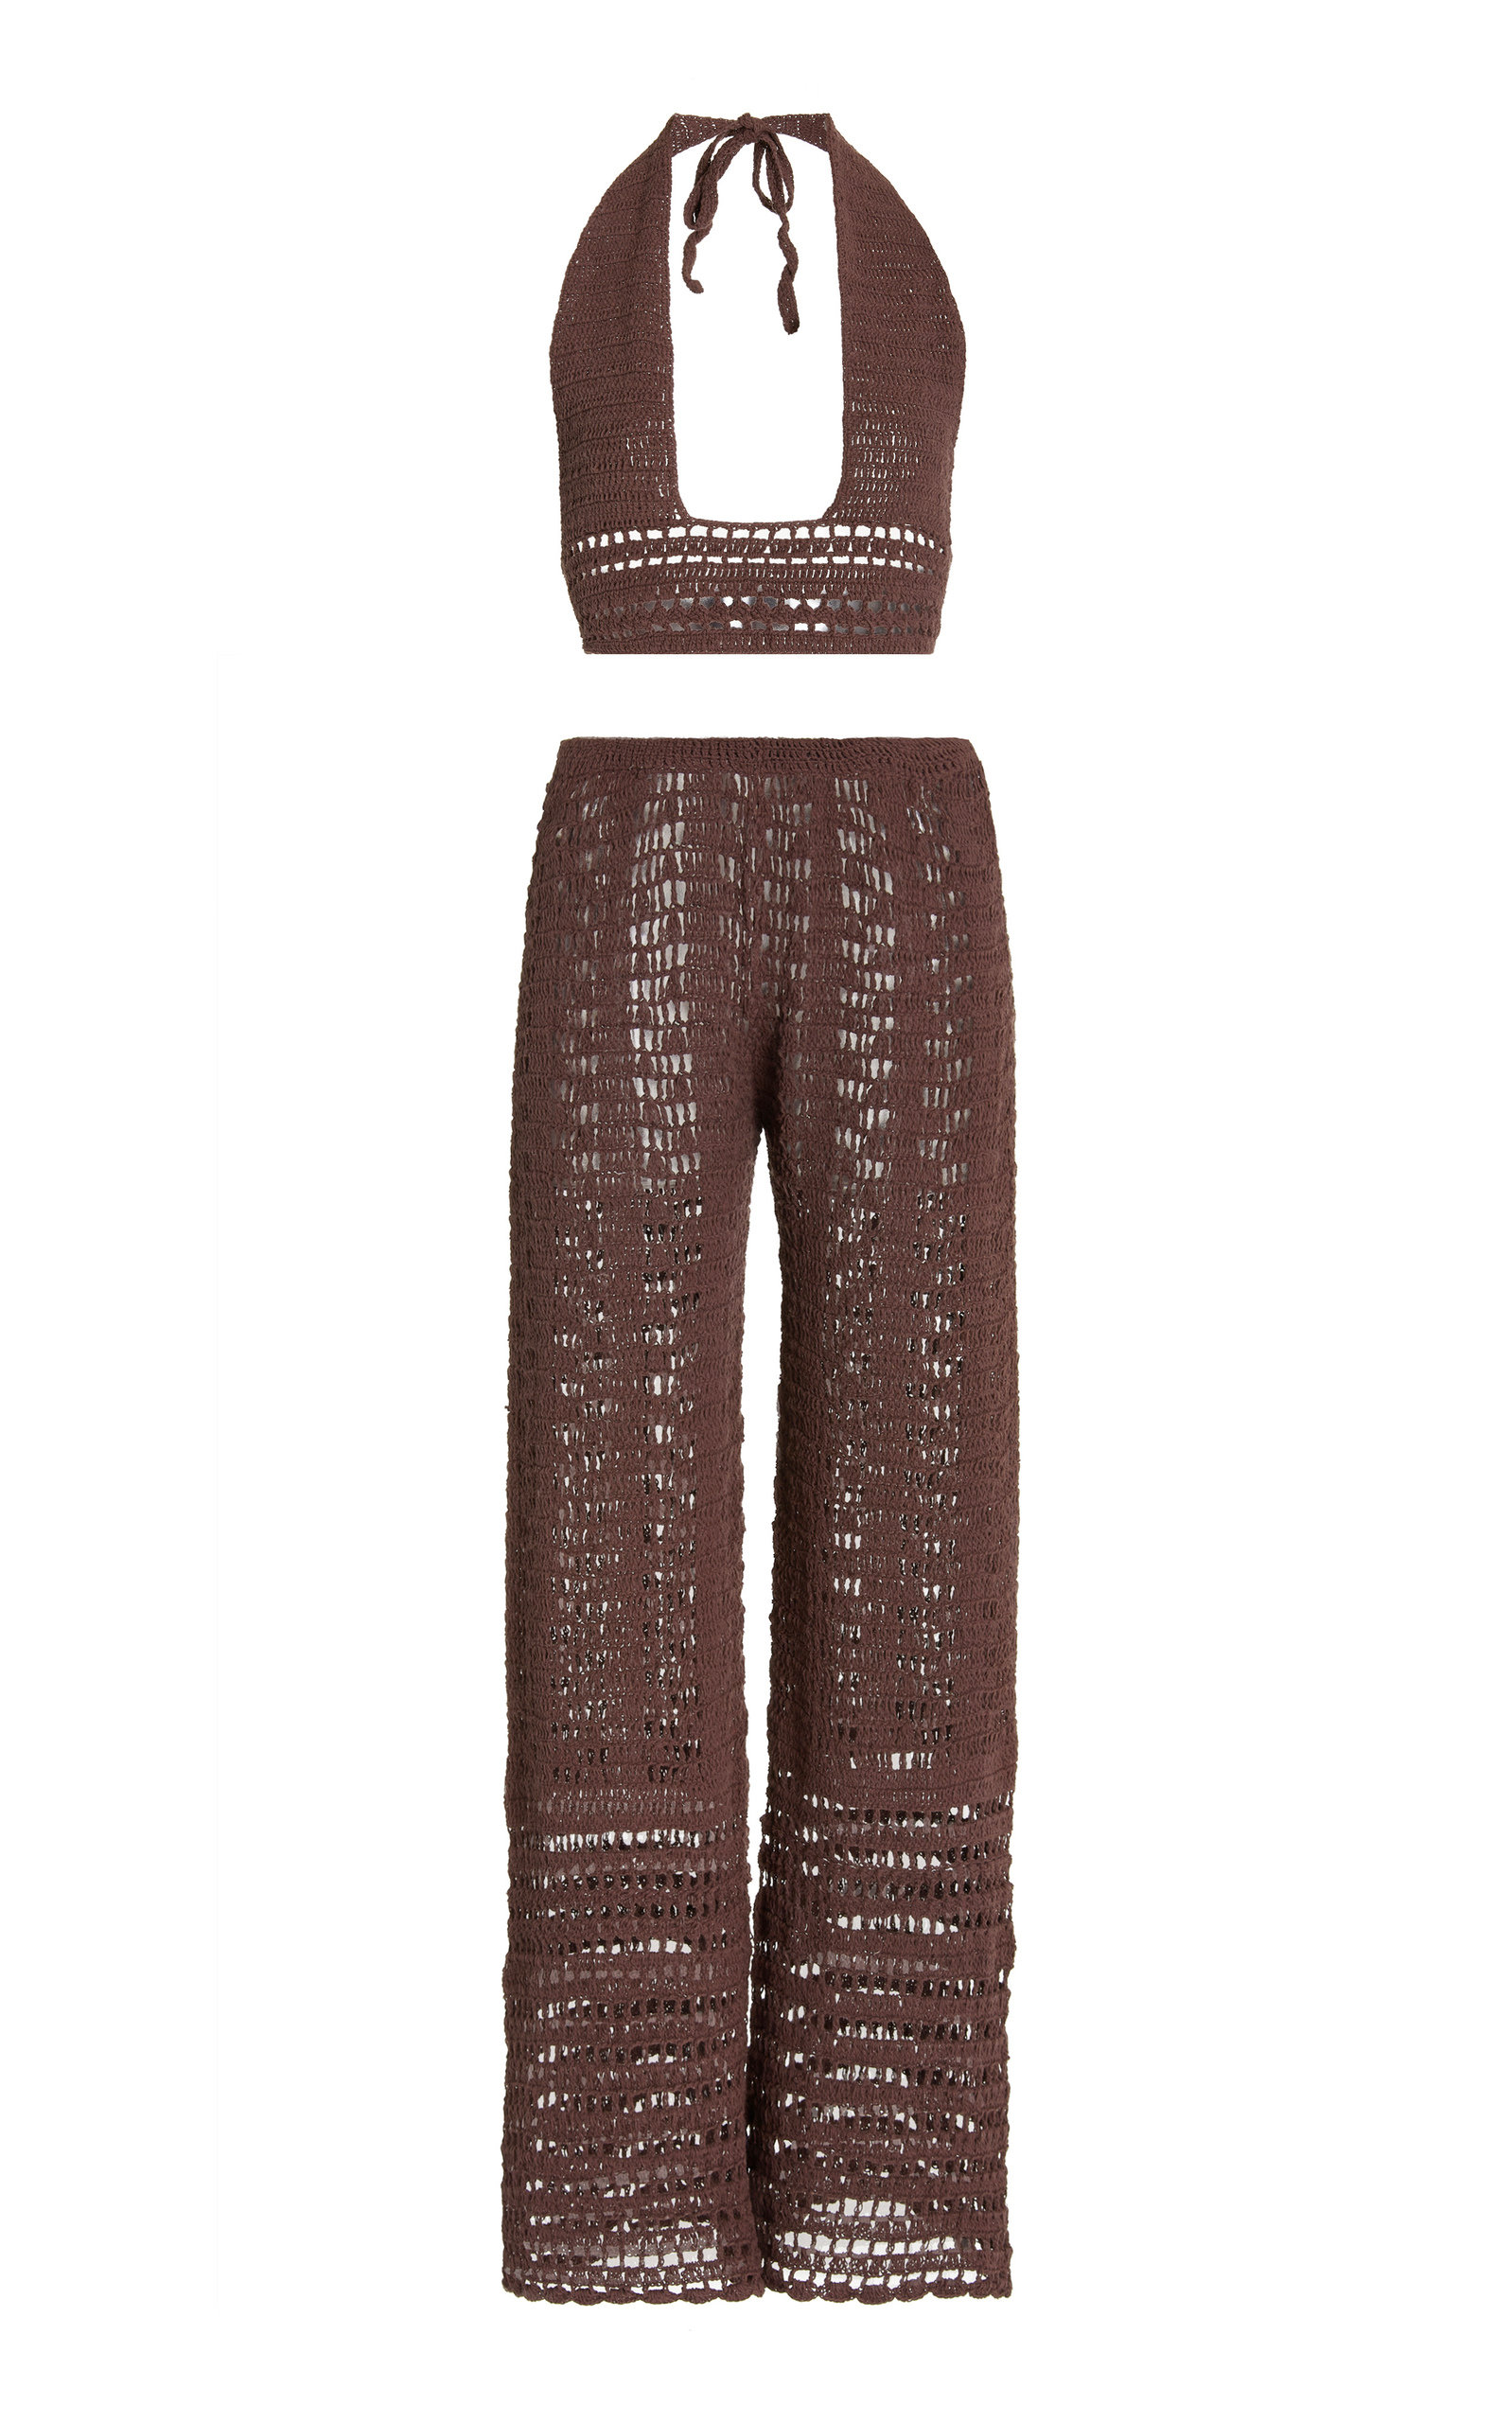 Women's Zo Crocheted Cotton Top and Pants Set